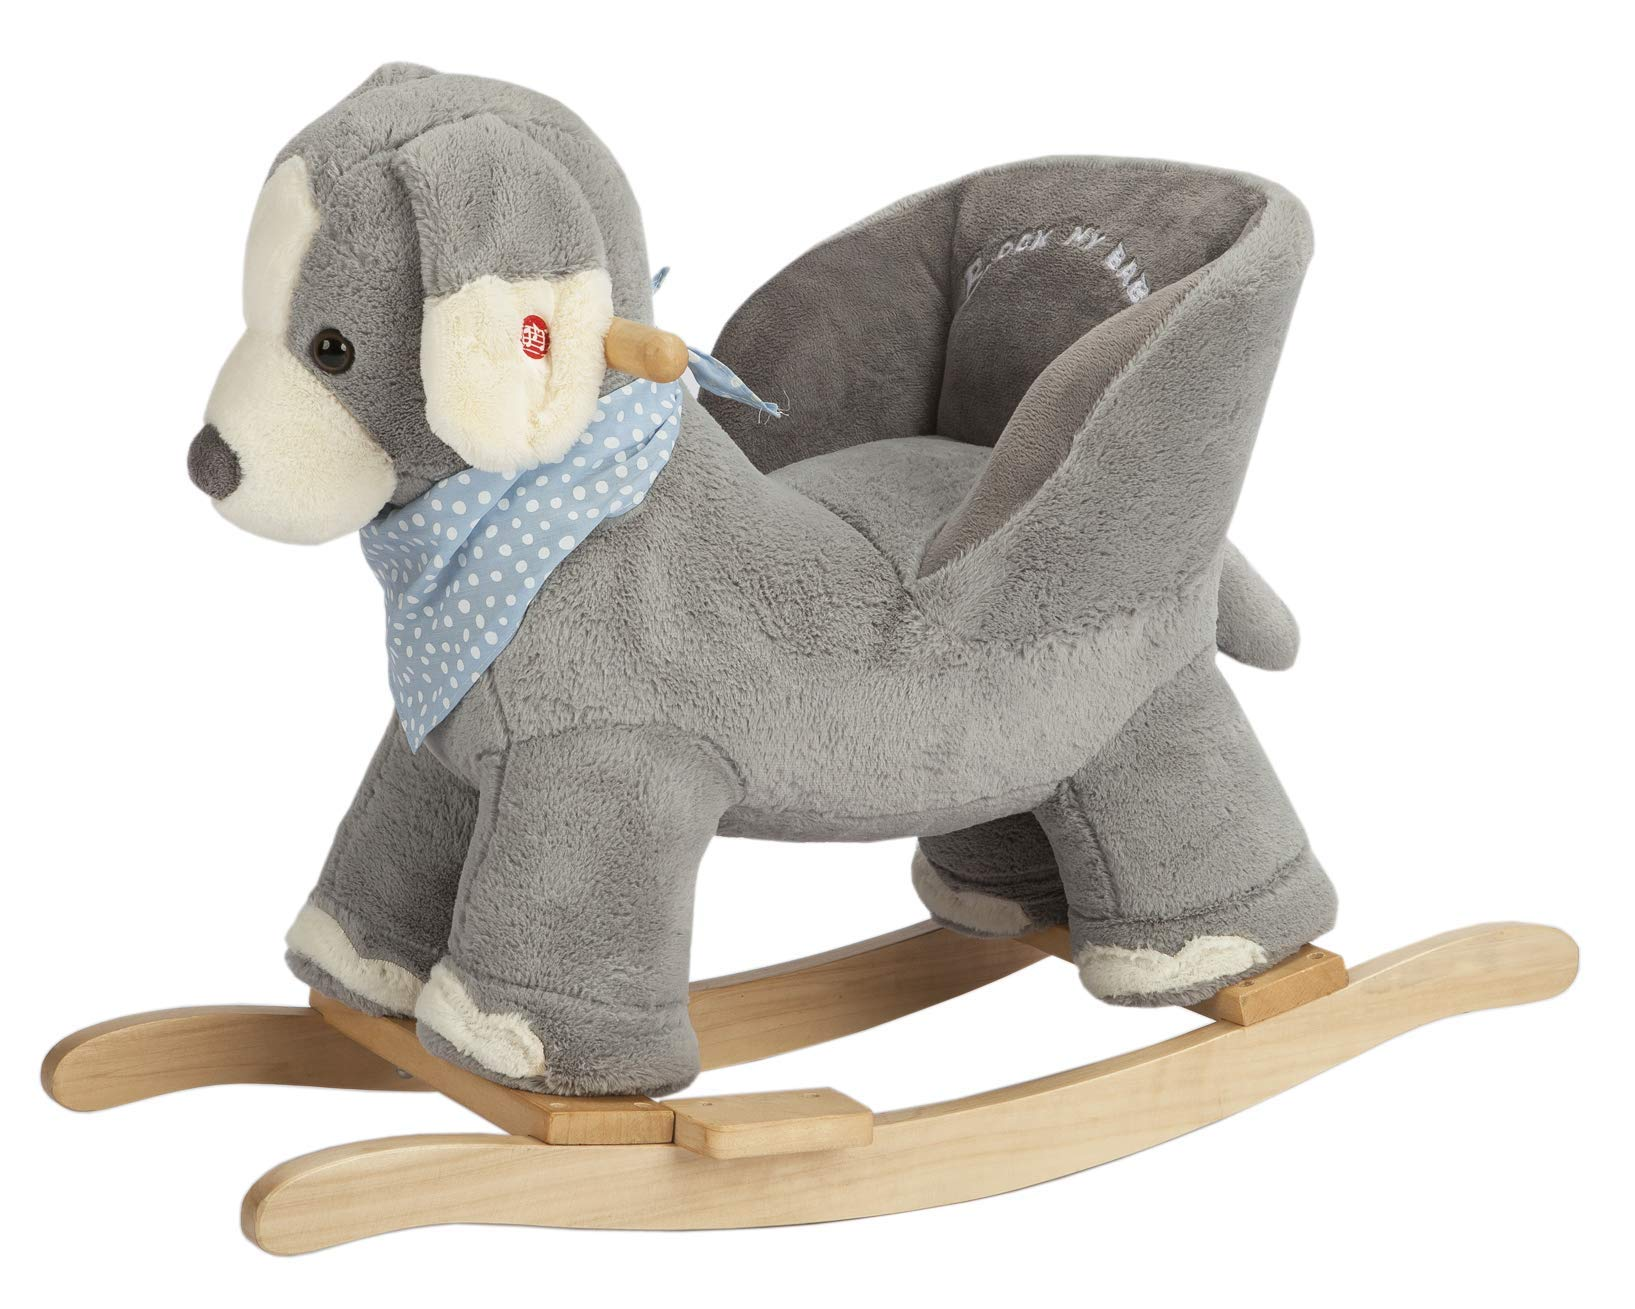 Rock My Baby Baby Rocking Horse Puppy With Chair Plush Stuffed Animal Dog Rocker Wooden Rocking Toy Puppy Baby Rocker Animal Ride On For Girls And Boys Age 1 Year And Up